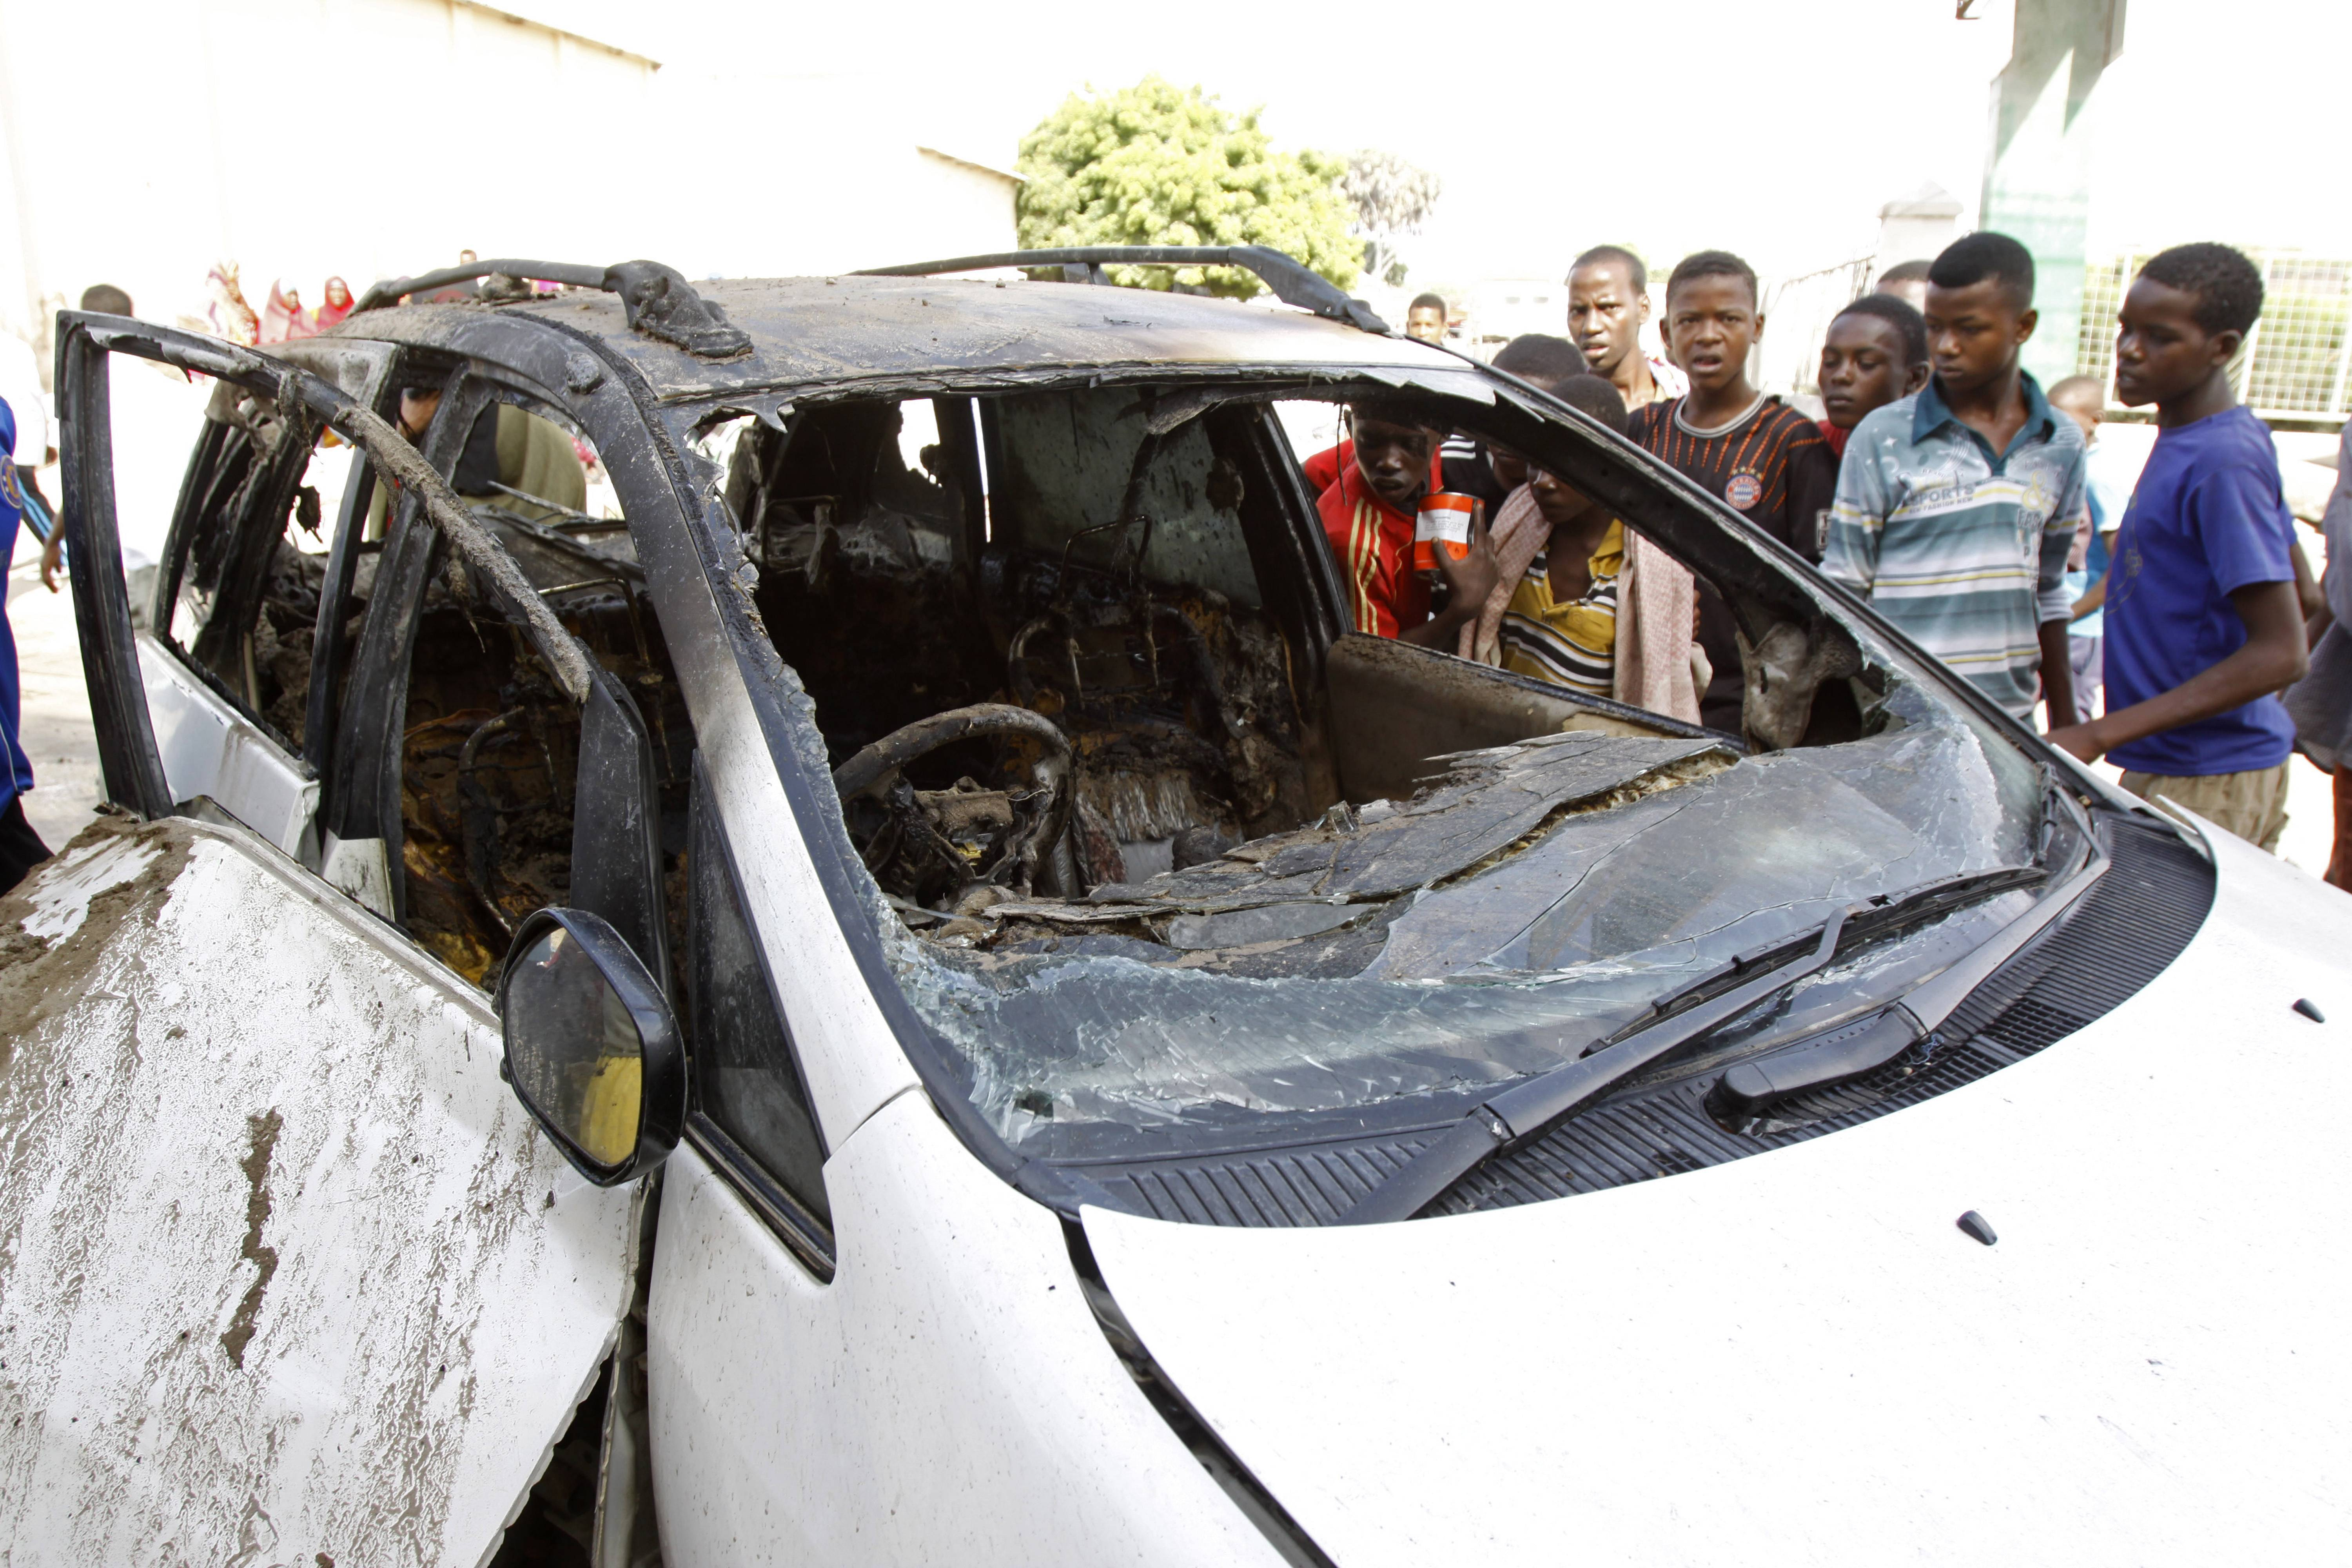 Somalis look at the smashed car in which a Somali journalist was killed by a bomb planted under his car in the Somali capital of Mogadishu, Saturday, June,  21. No group has claimed the responsibility the Assassination of Yusuf Keynan, the editor of Mustaqbal radio in Mogadishu, who died as he started his mined car to go to work in the morning, according to Abdinasir Mohamed Ali, a colleague of the murdered reporter.